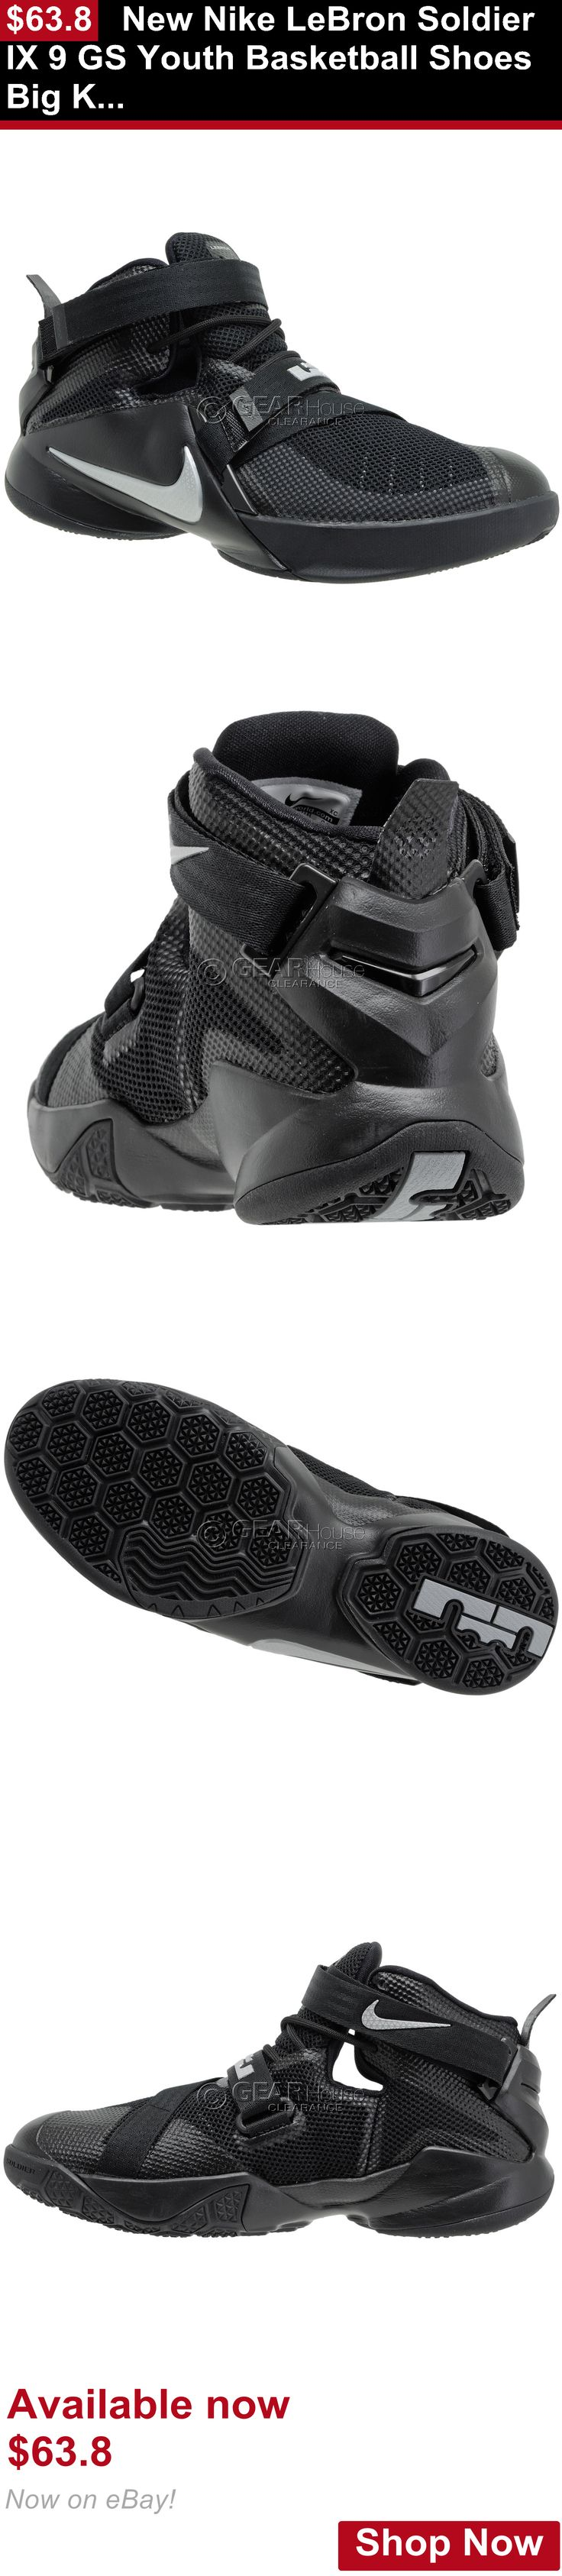 Children boys clothing shoes and accessories: New Nike Lebron Soldier Ix 9 Gs Youth Basketball Shoes Big Kids Boys - Black BUY IT NOW ONLY: $63.8